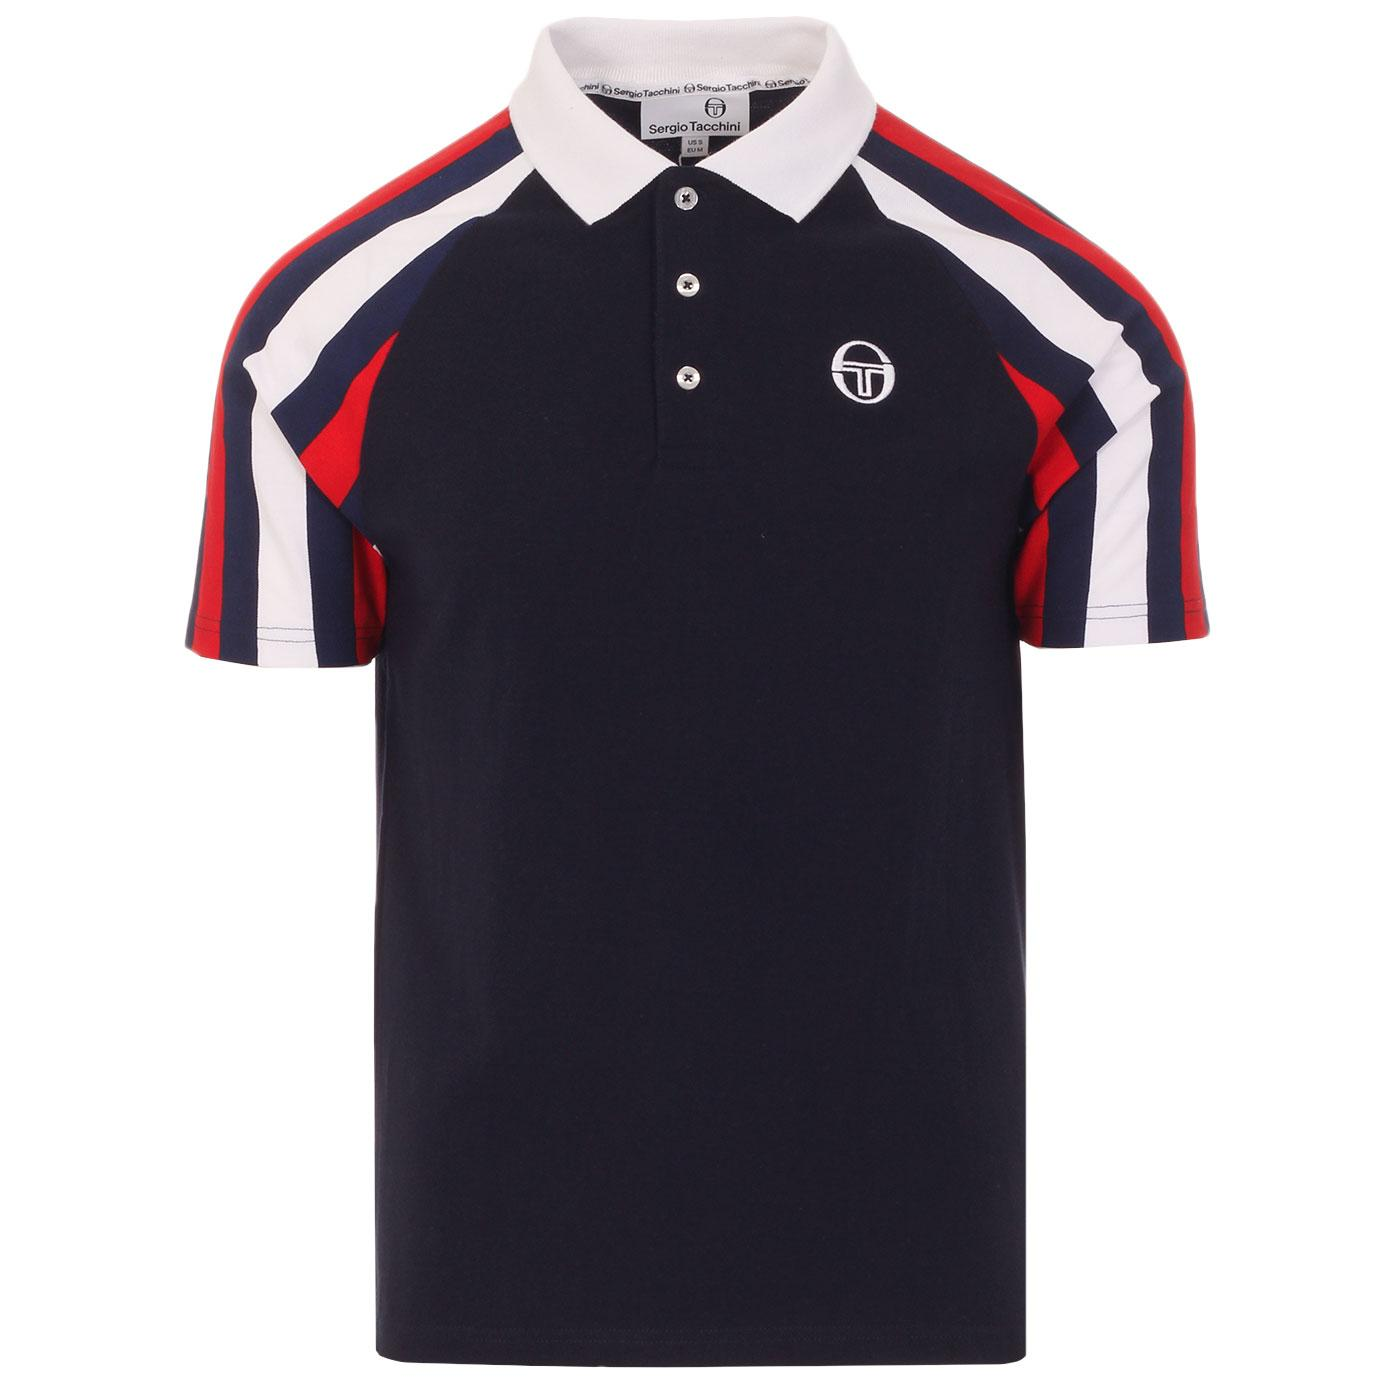 Blow SERGIO TACCHINI Retro 1980s Polo Shirt (NS)